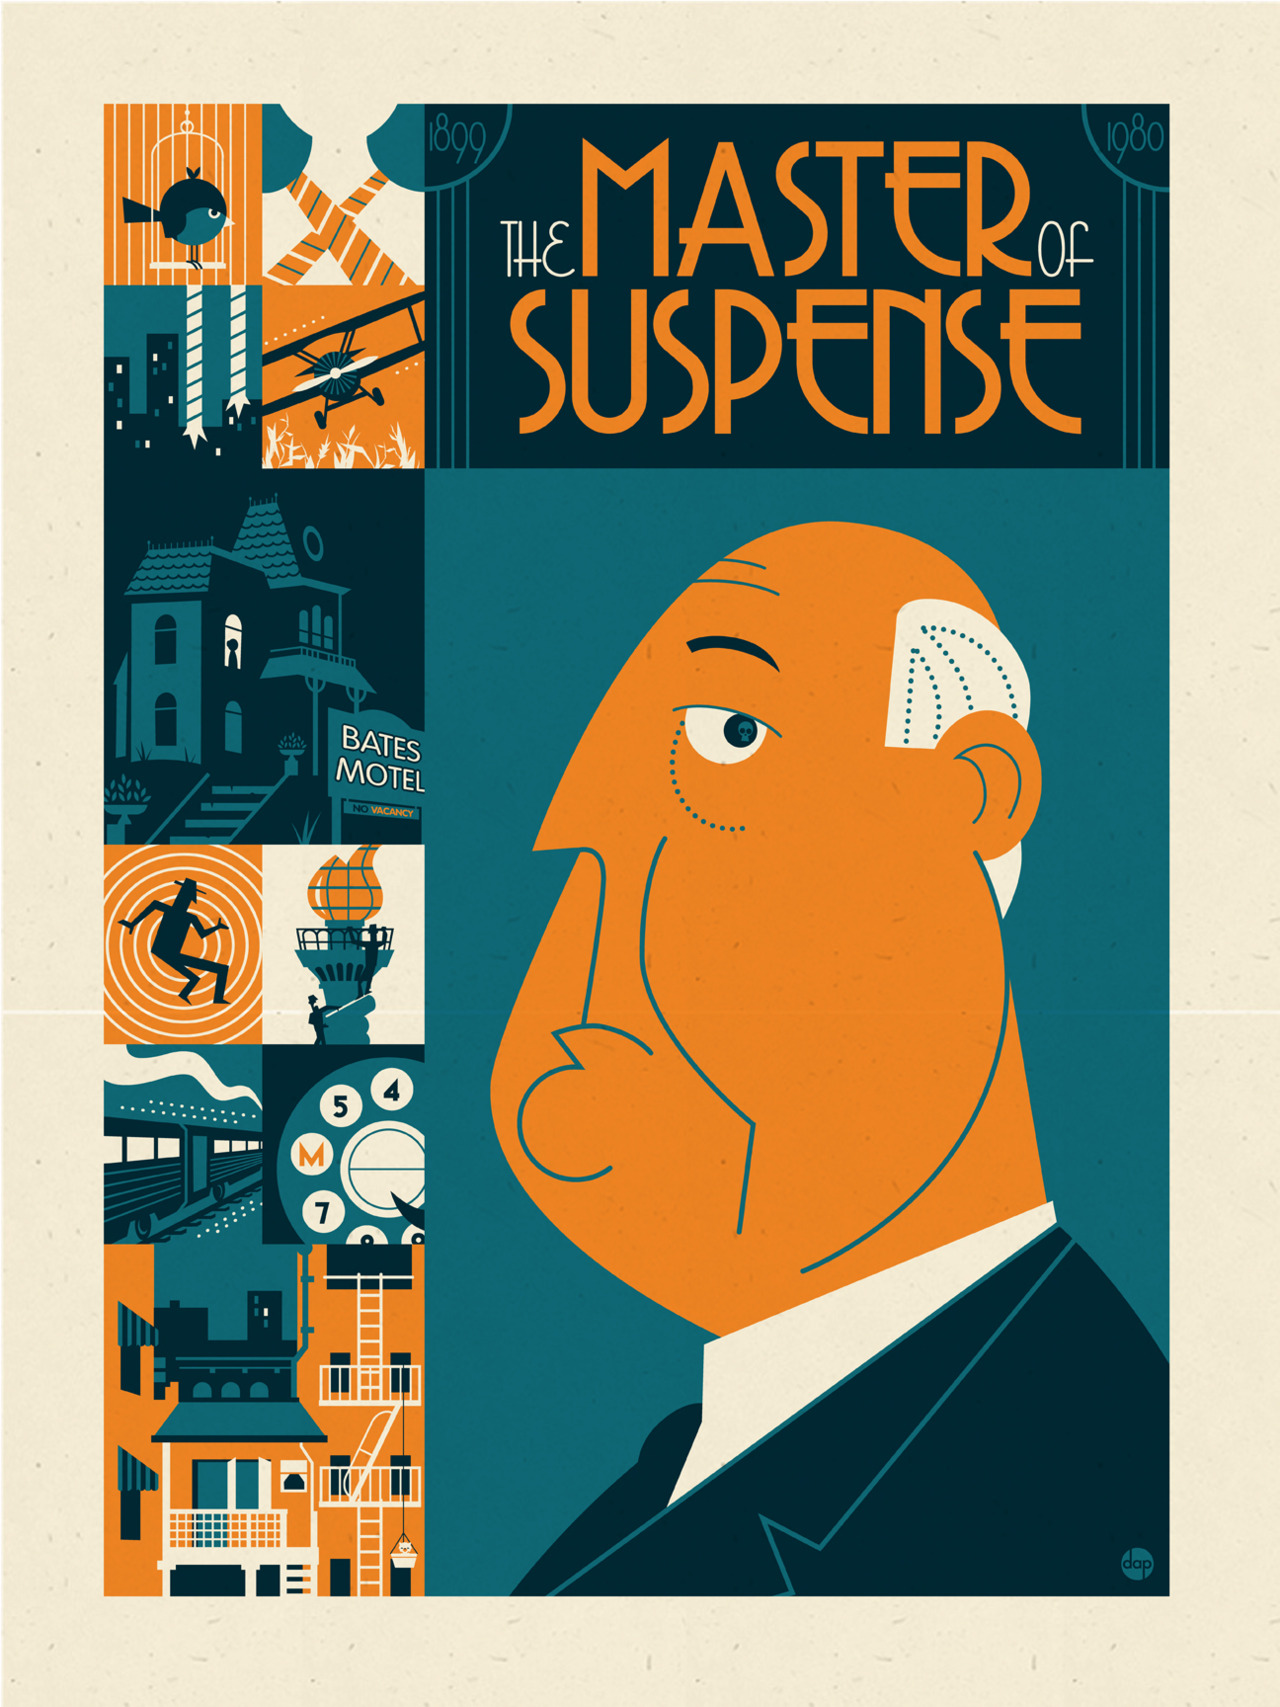 The Master of Suspense by Dave Perillo